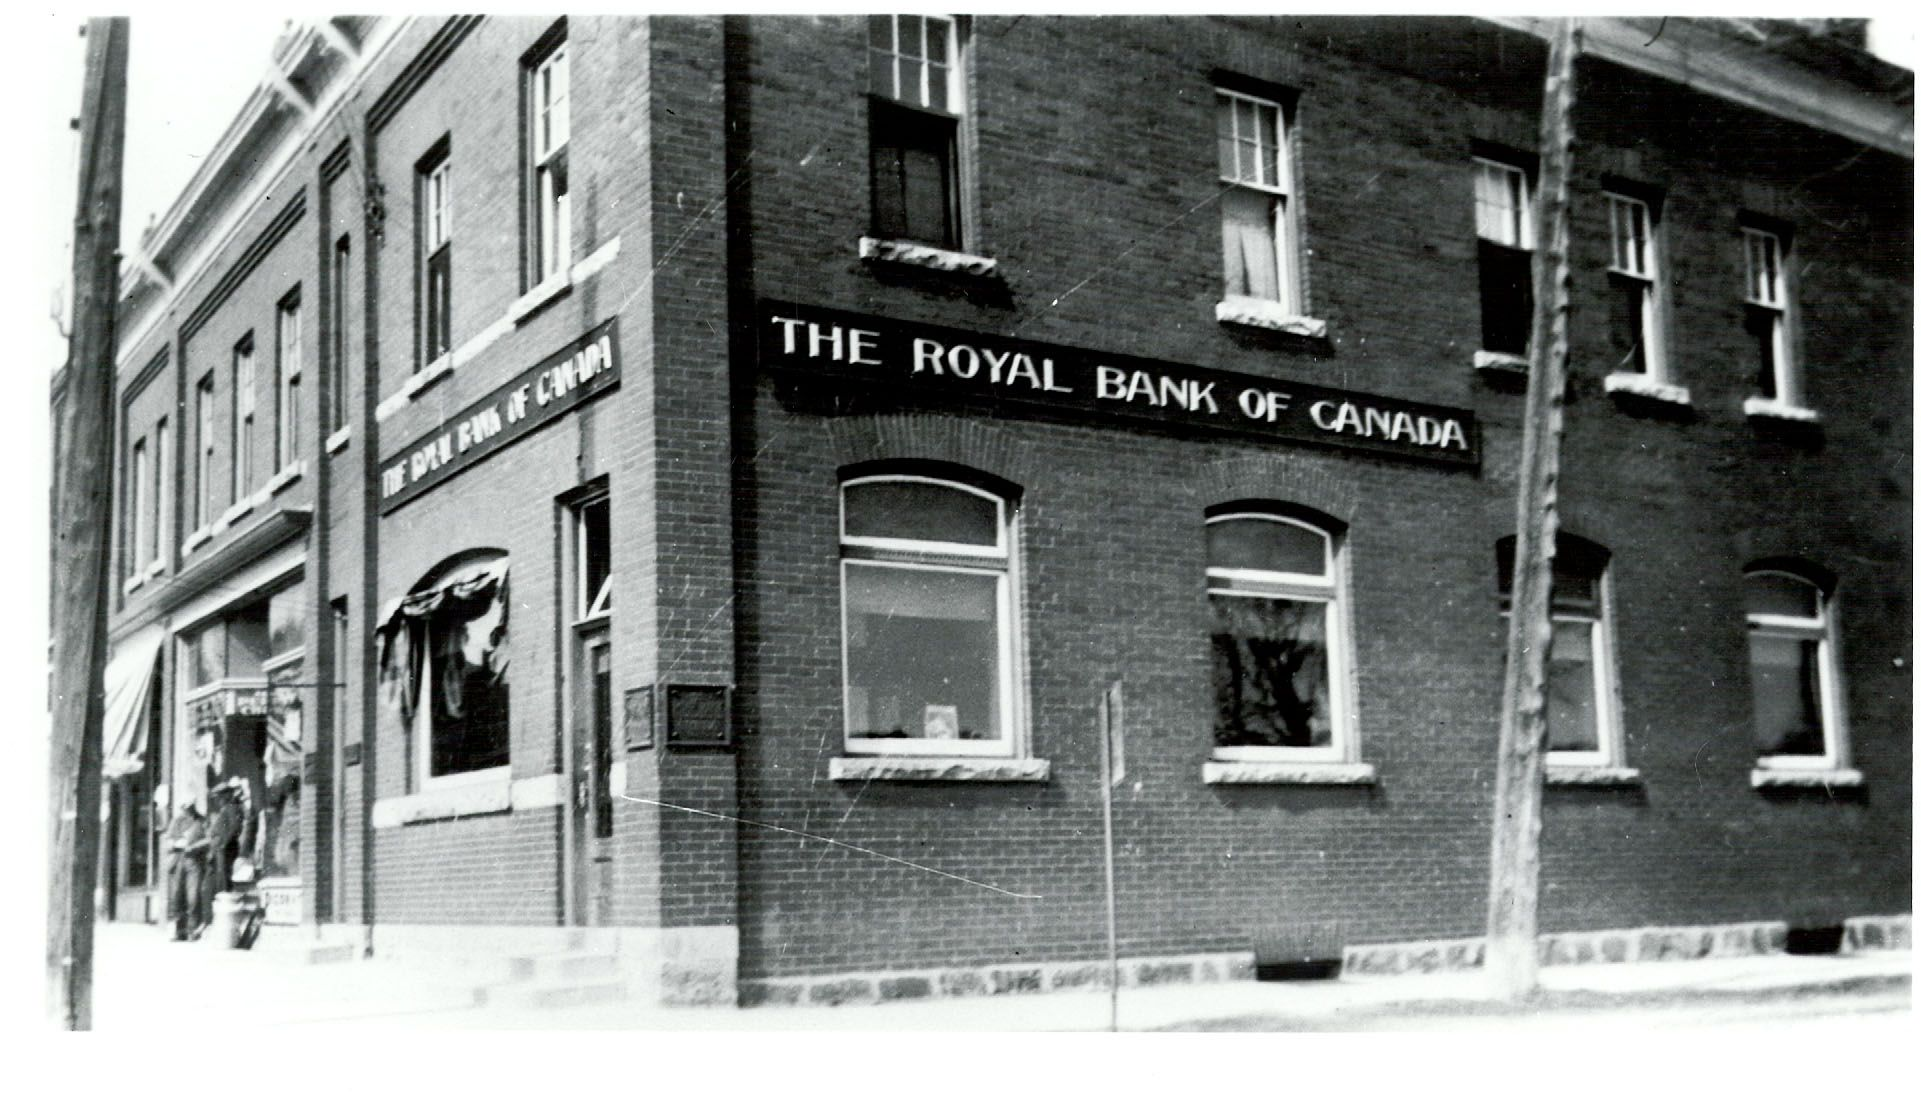 the-royal-bank-of-canada-main-street-mill-street-grand-valley-ca-1938